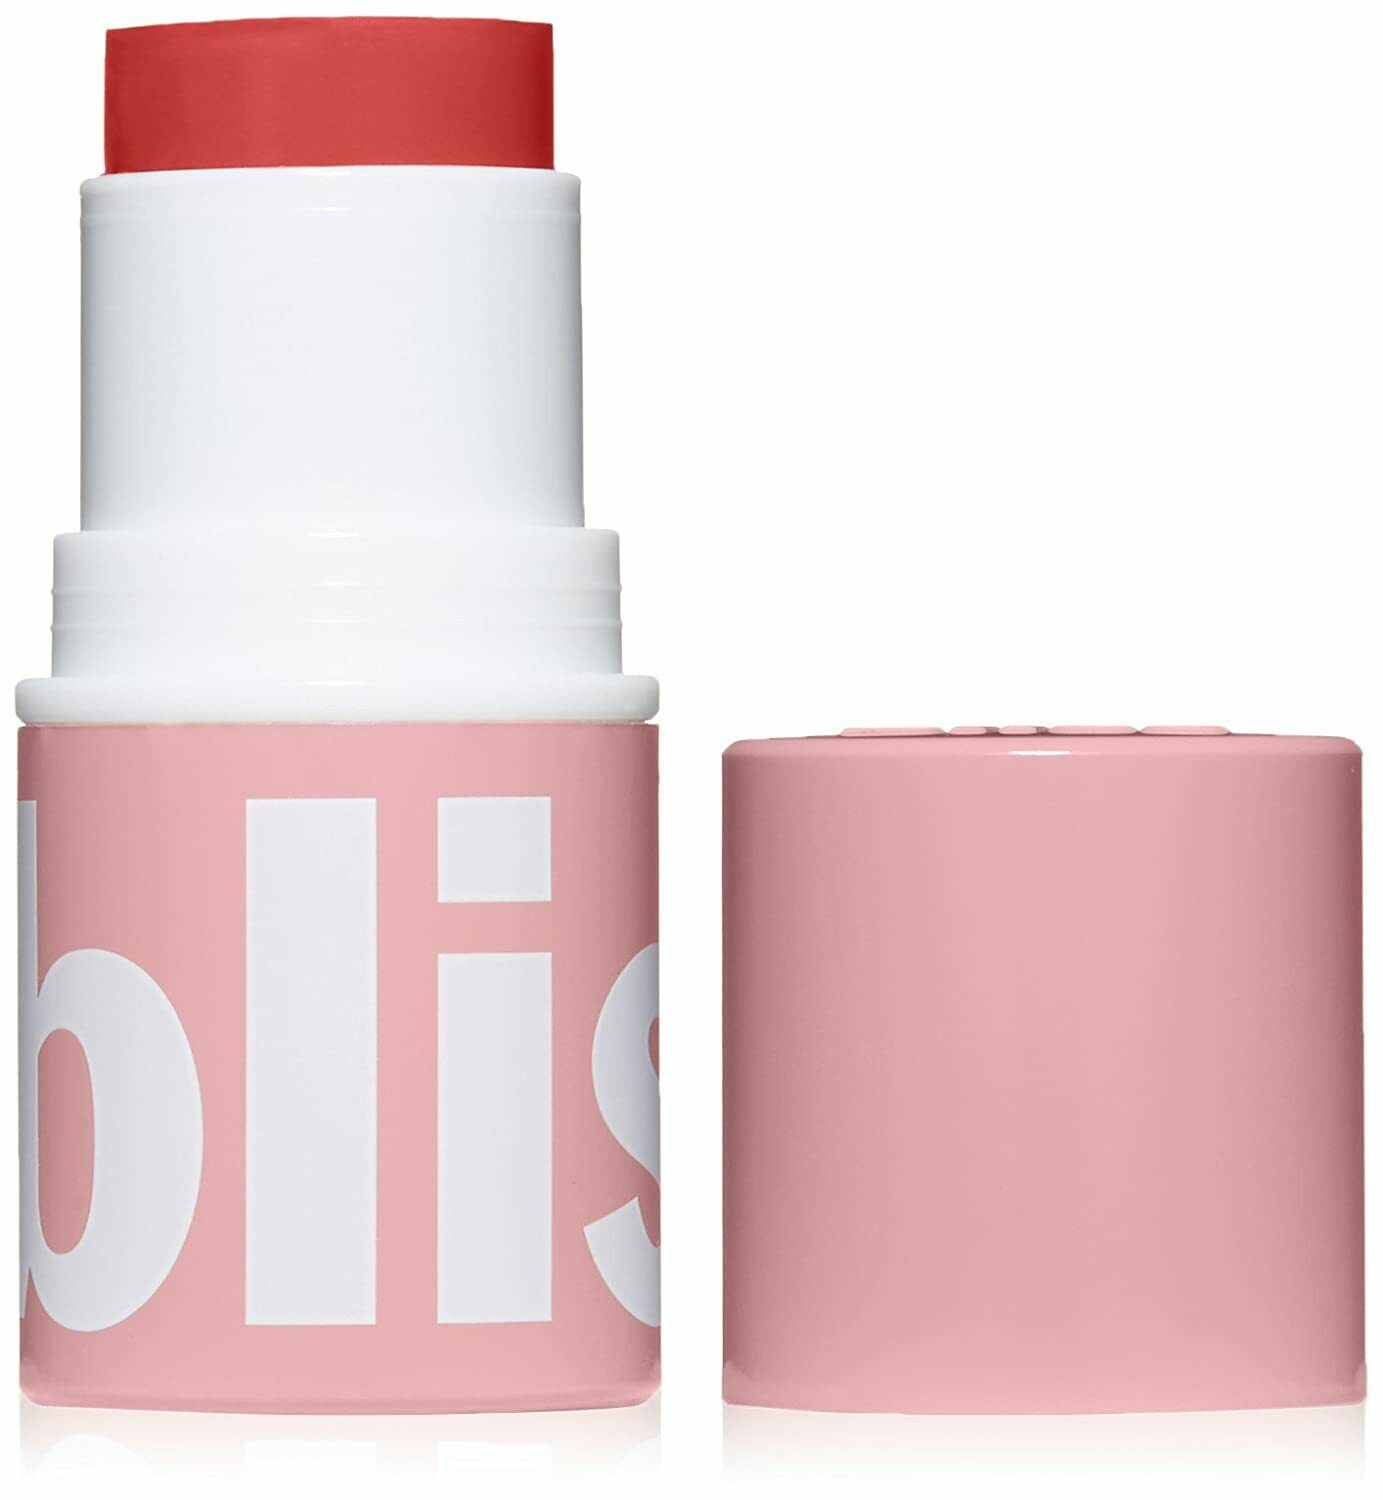 Primary image for bliss Bang Pow Tinted Lip Balm pink about it (Lot of 2)